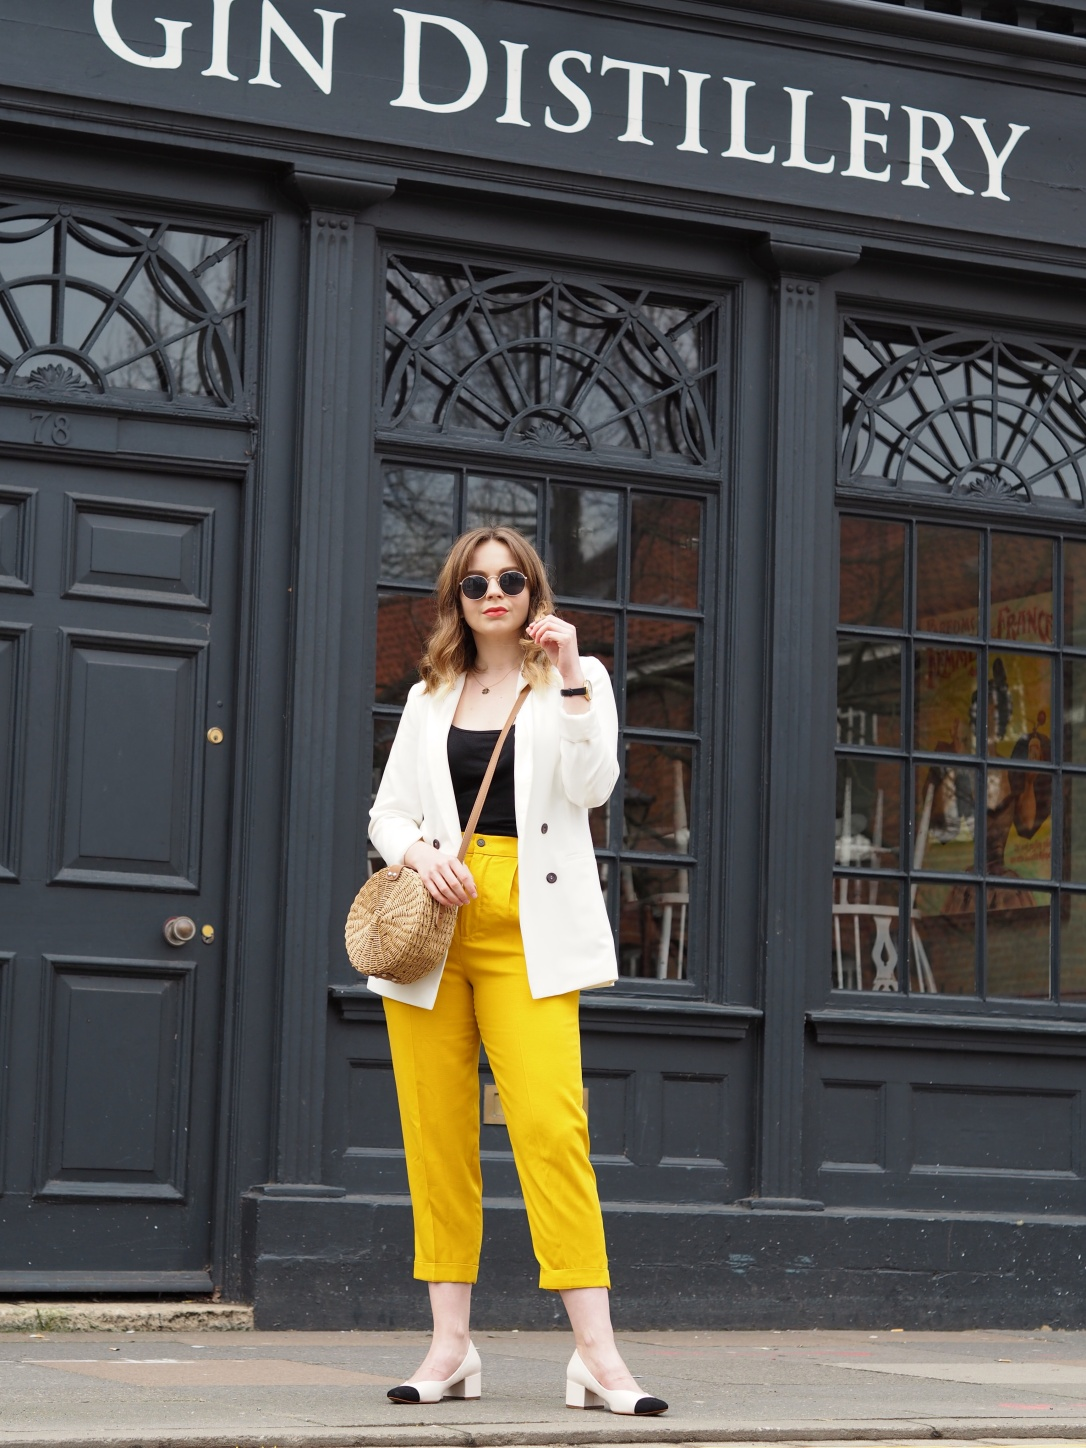 Zara yellow trousers